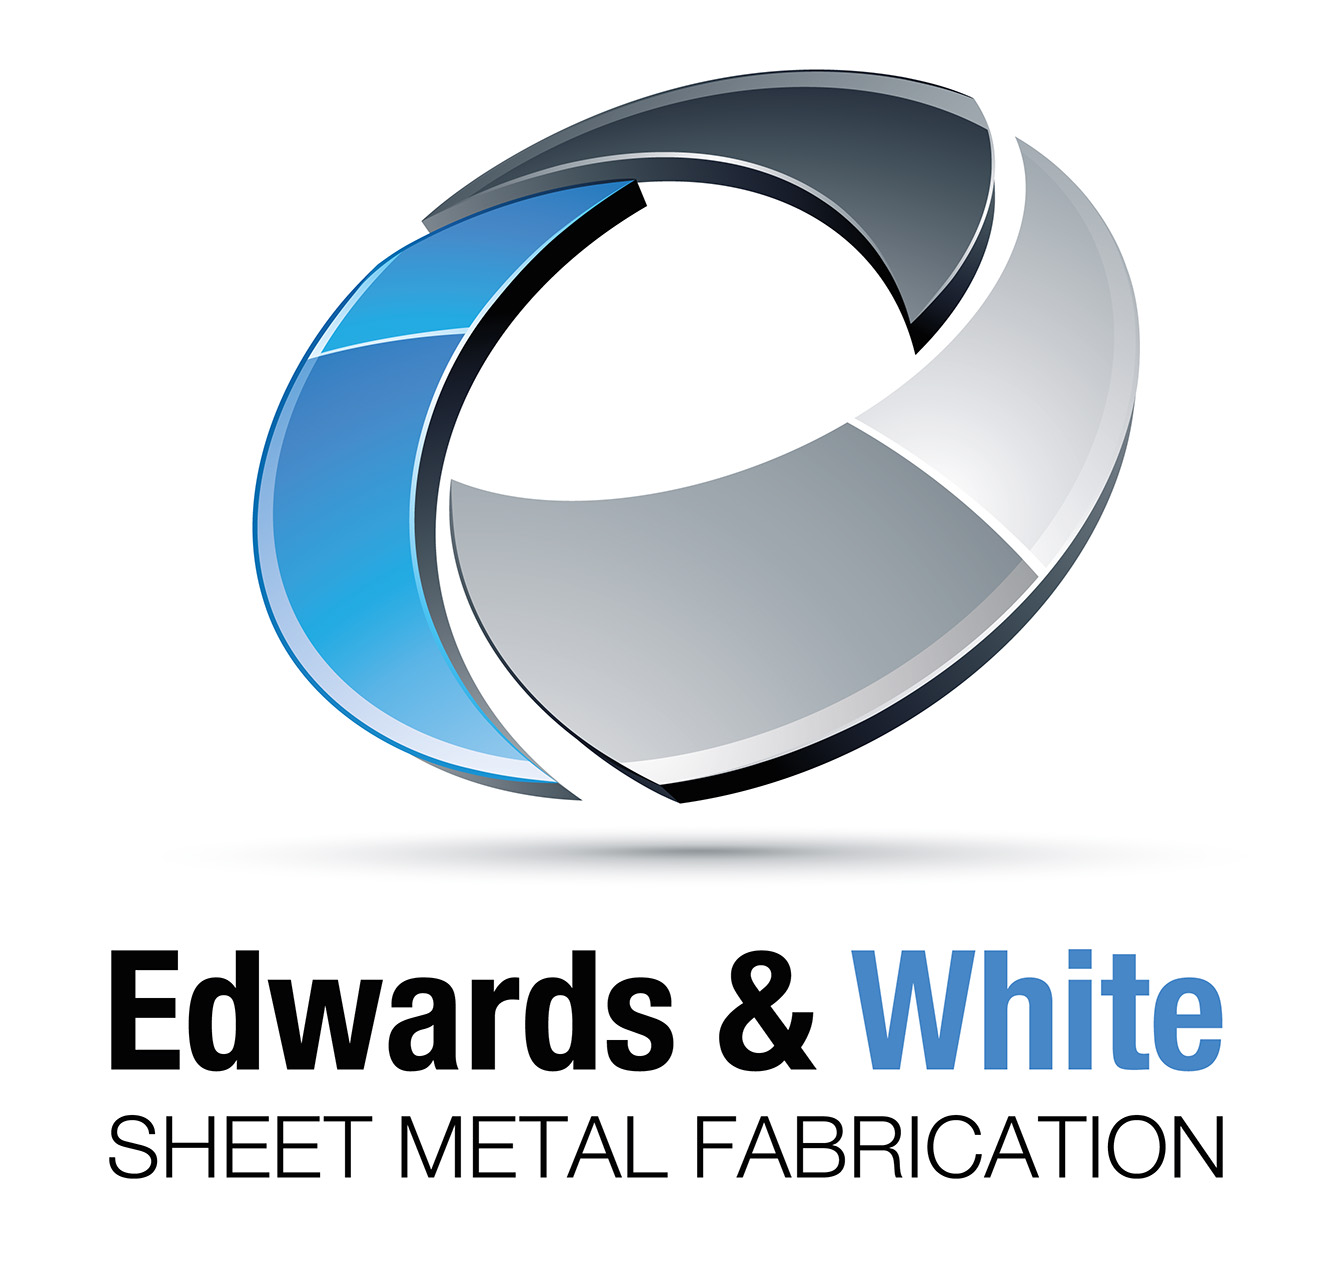 Metallic Fabricator Company Mexico: Edwards And White Ltd: 01491 680 179